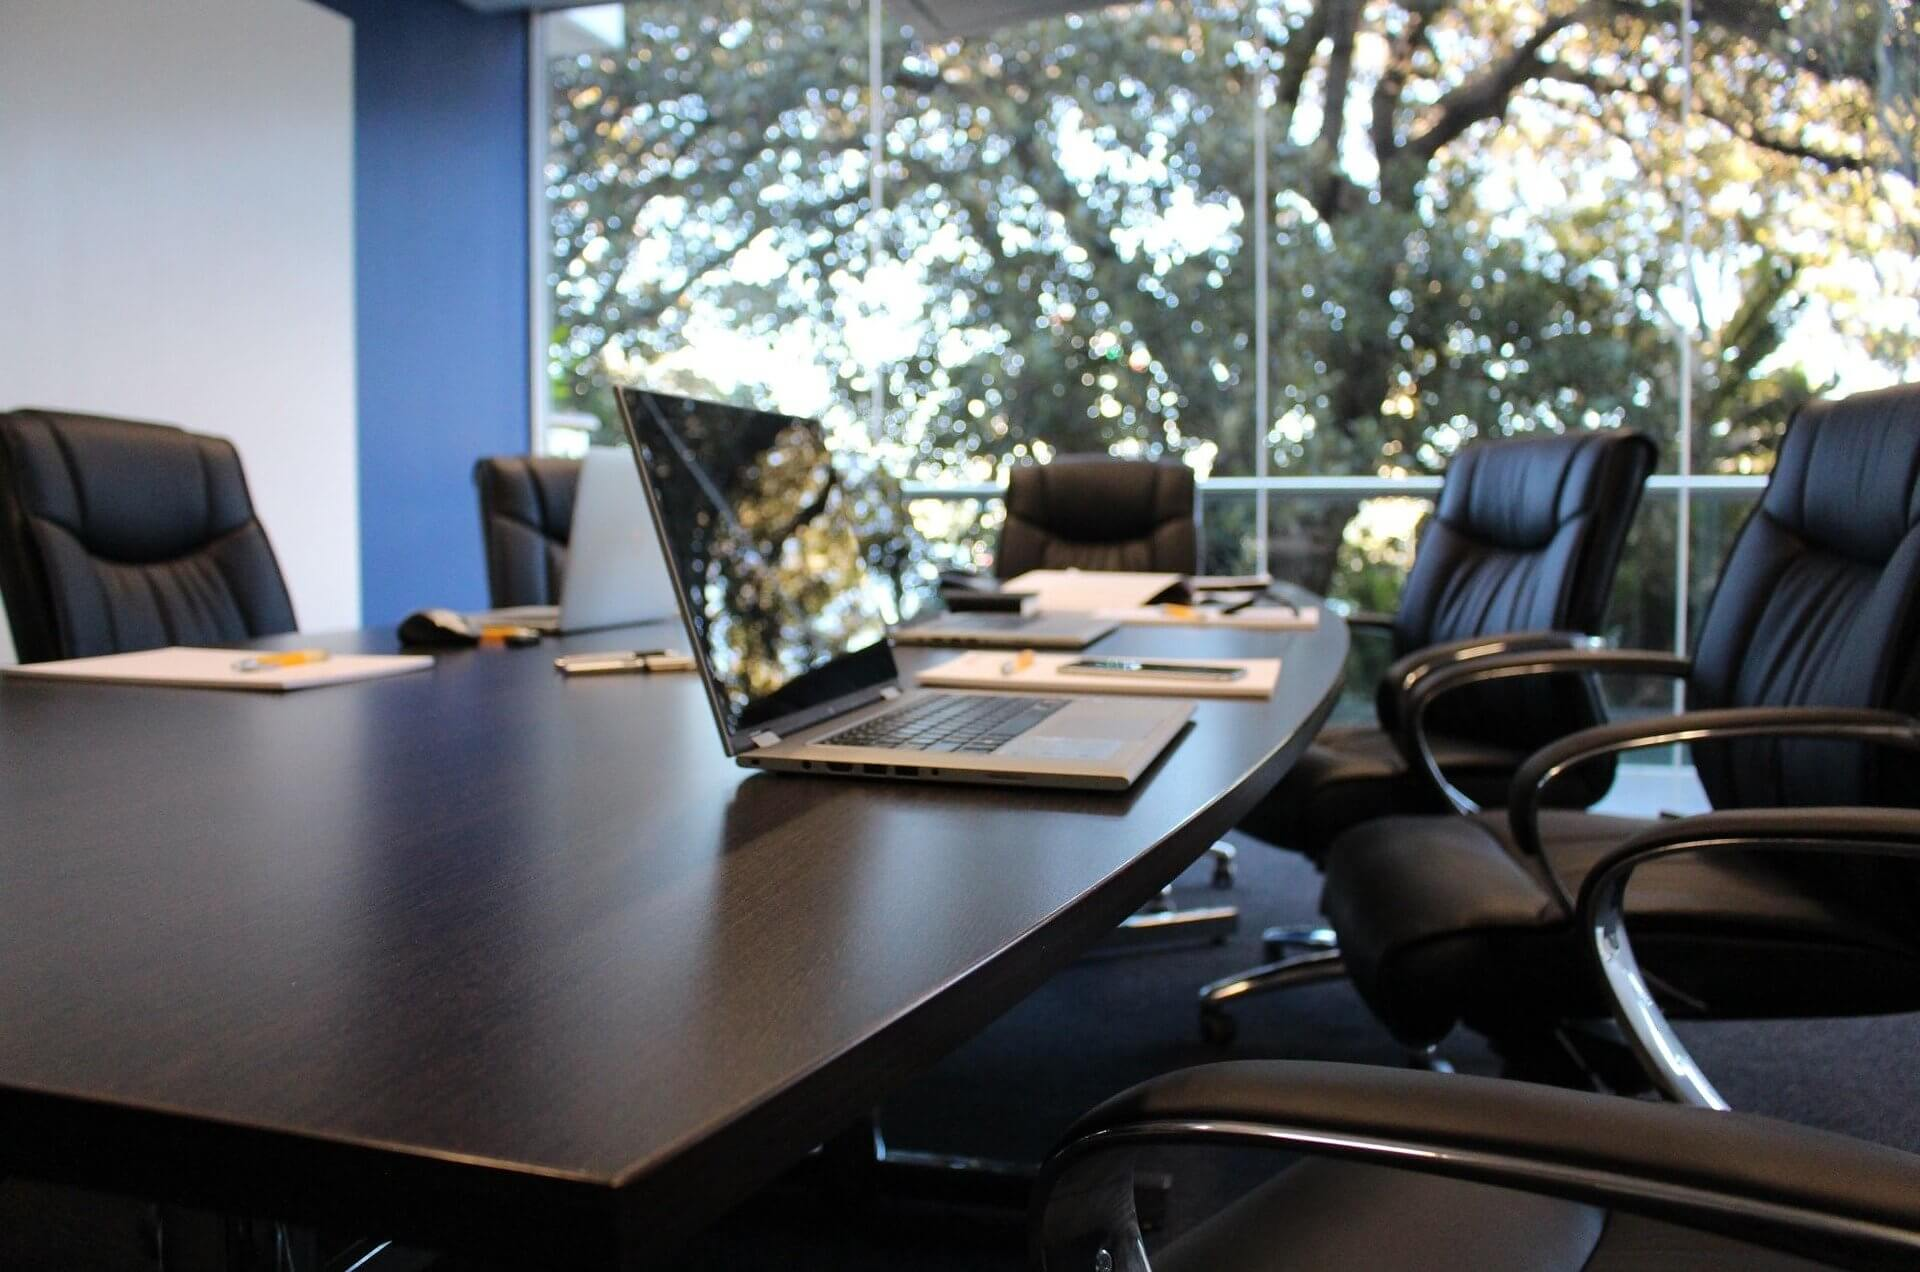 Jeff Jinks Law - Indianapolis Estate Planning Attorney - Boardroom in Office Building